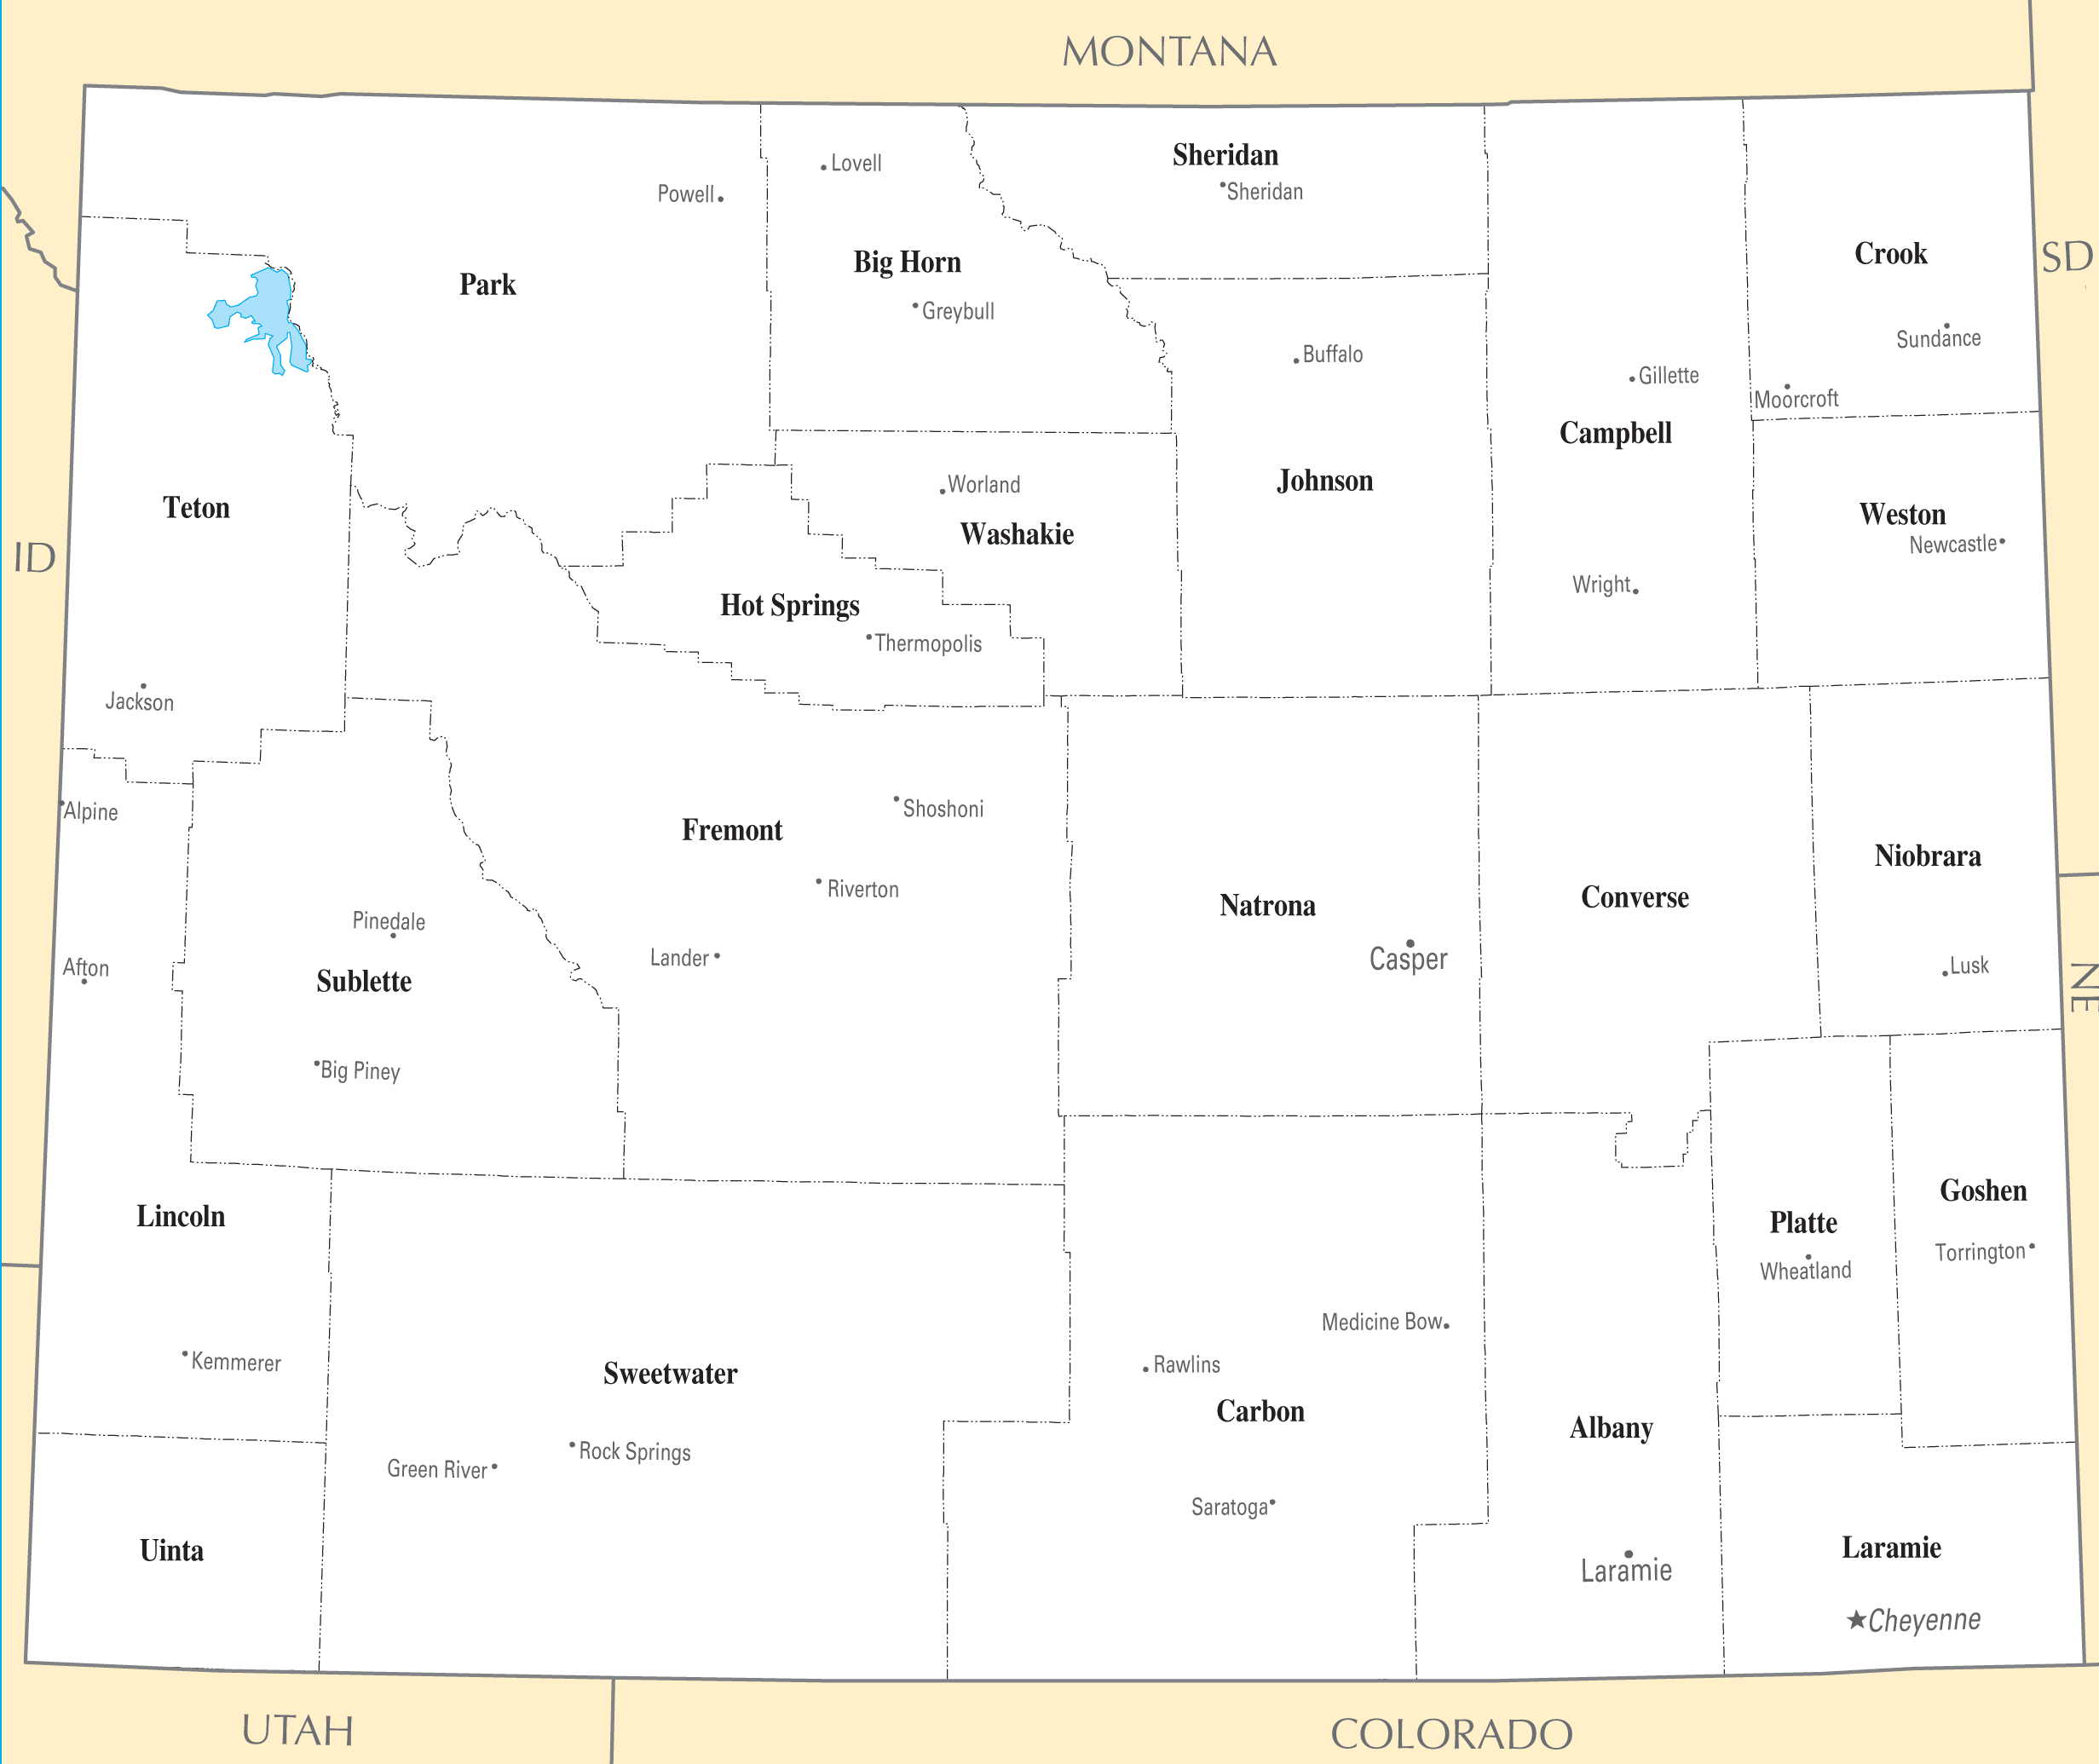 Wyoming Cities And Towns Mapsofnet - Map of wyoming cities